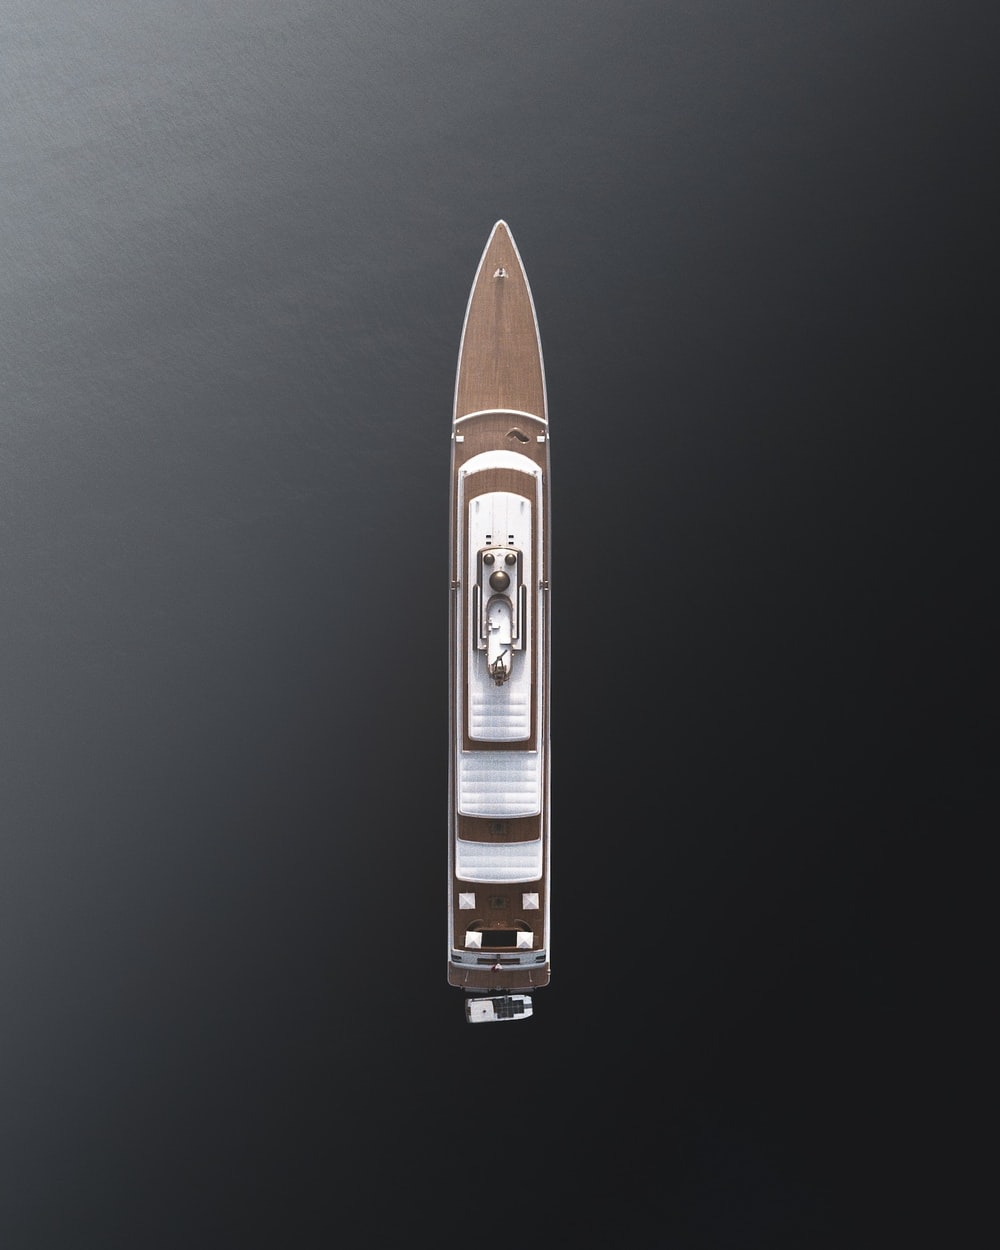 brown and white space ship